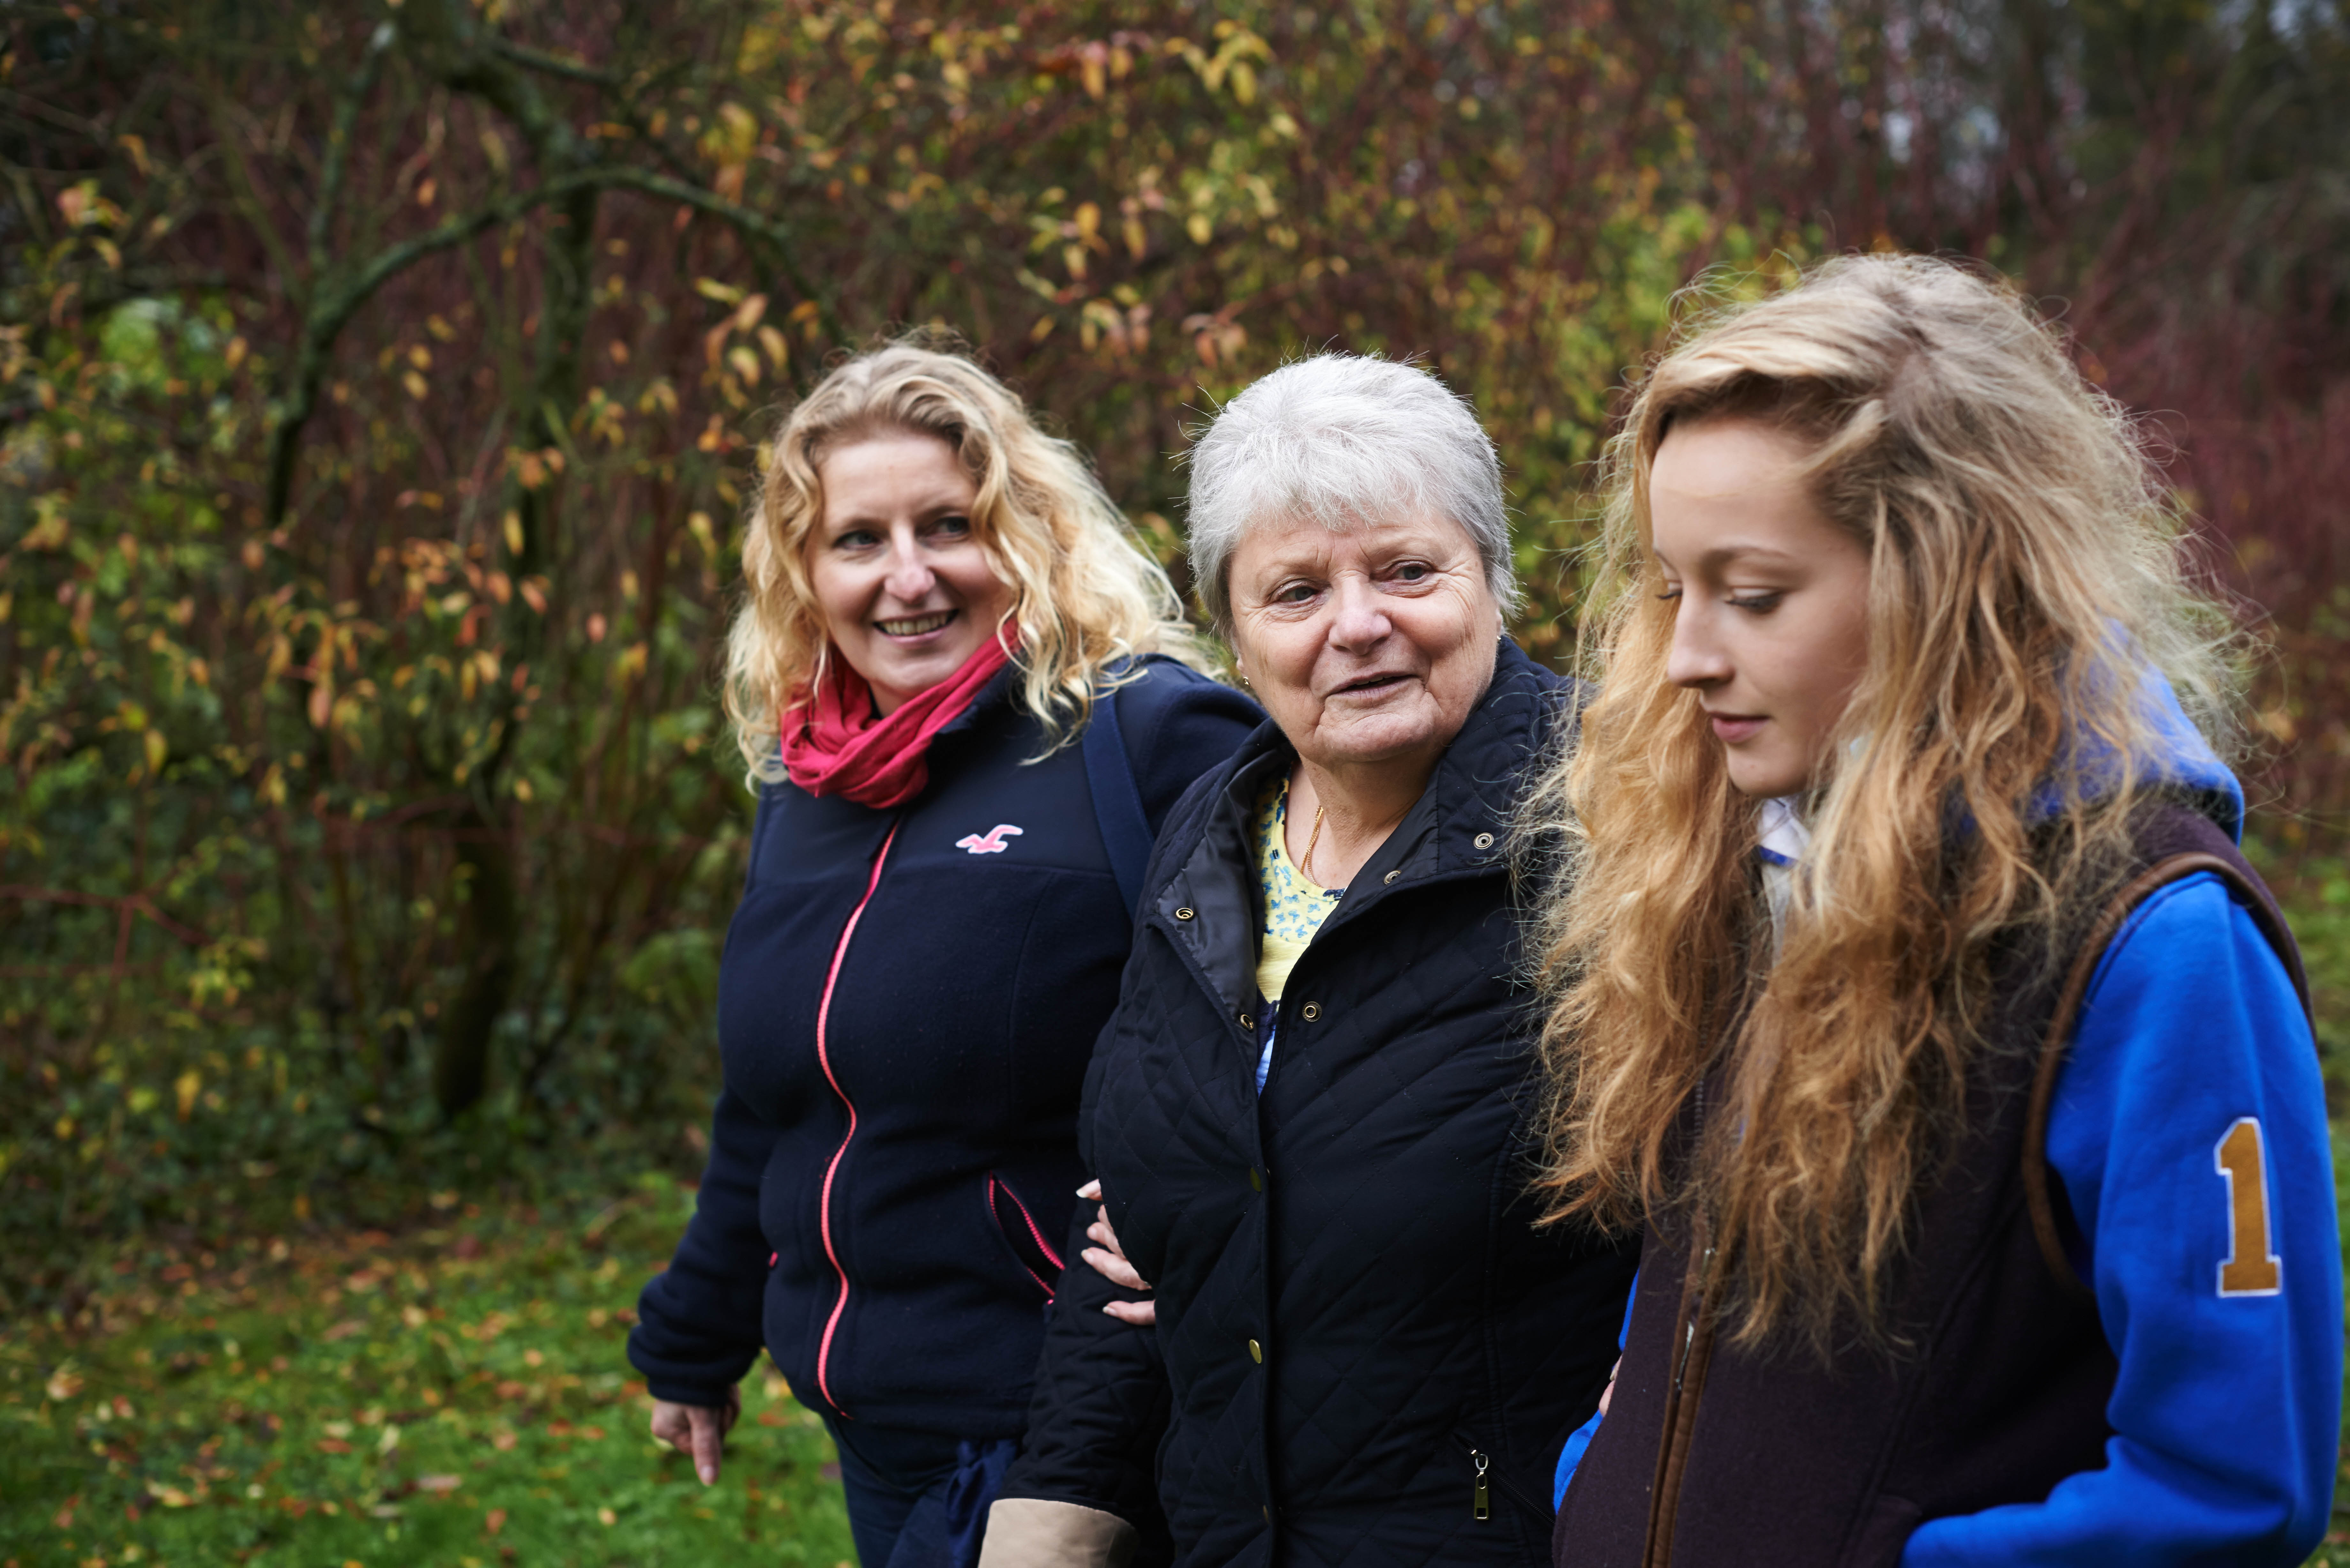 No time to lose: An action plan for dementia